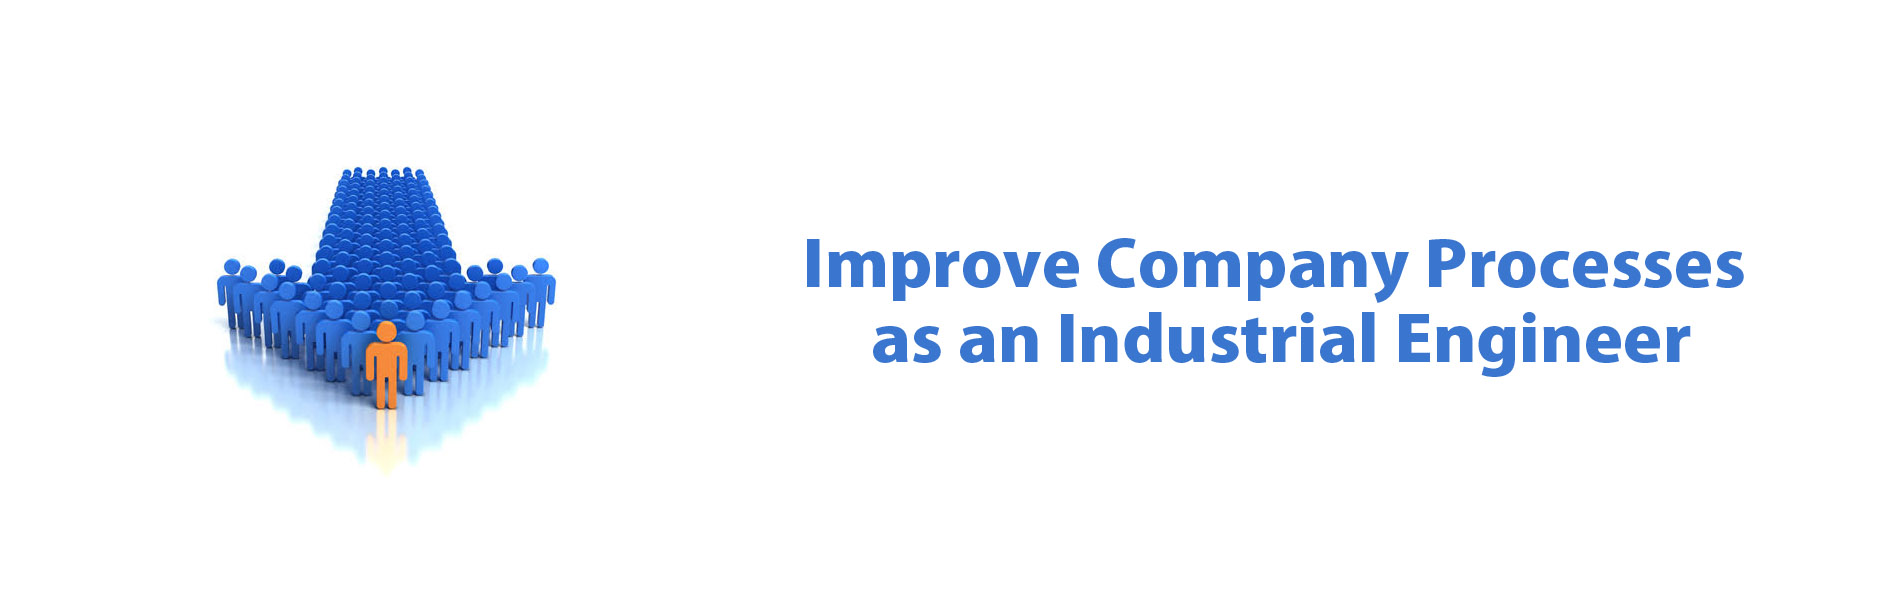 Improve company processes as an industrial engineer